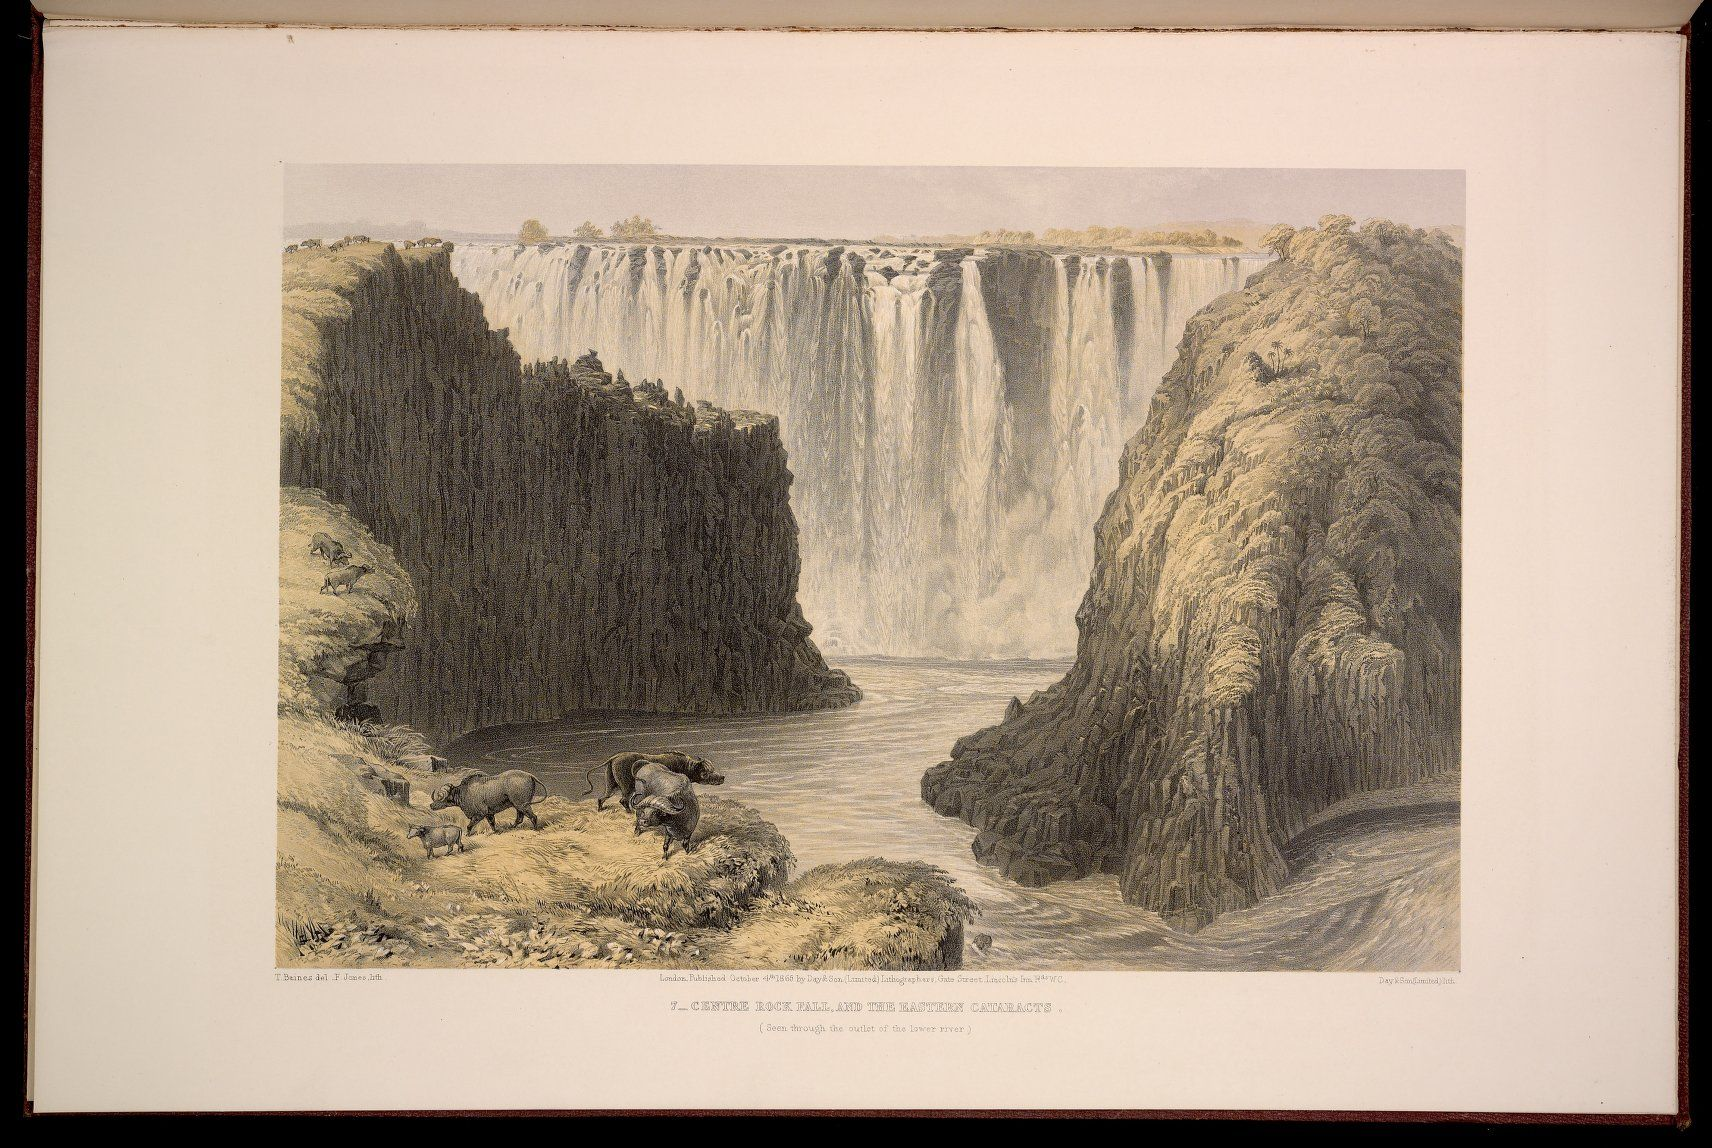 7 from The Victoria falls, Zambesi river : sketched on the spot (during the journey of J. Chapman  T. Baines) · Baines, Thomas, 1820-1875 · 1865 · Albert and Shirley Small Special Collections Library, University of Virginia.